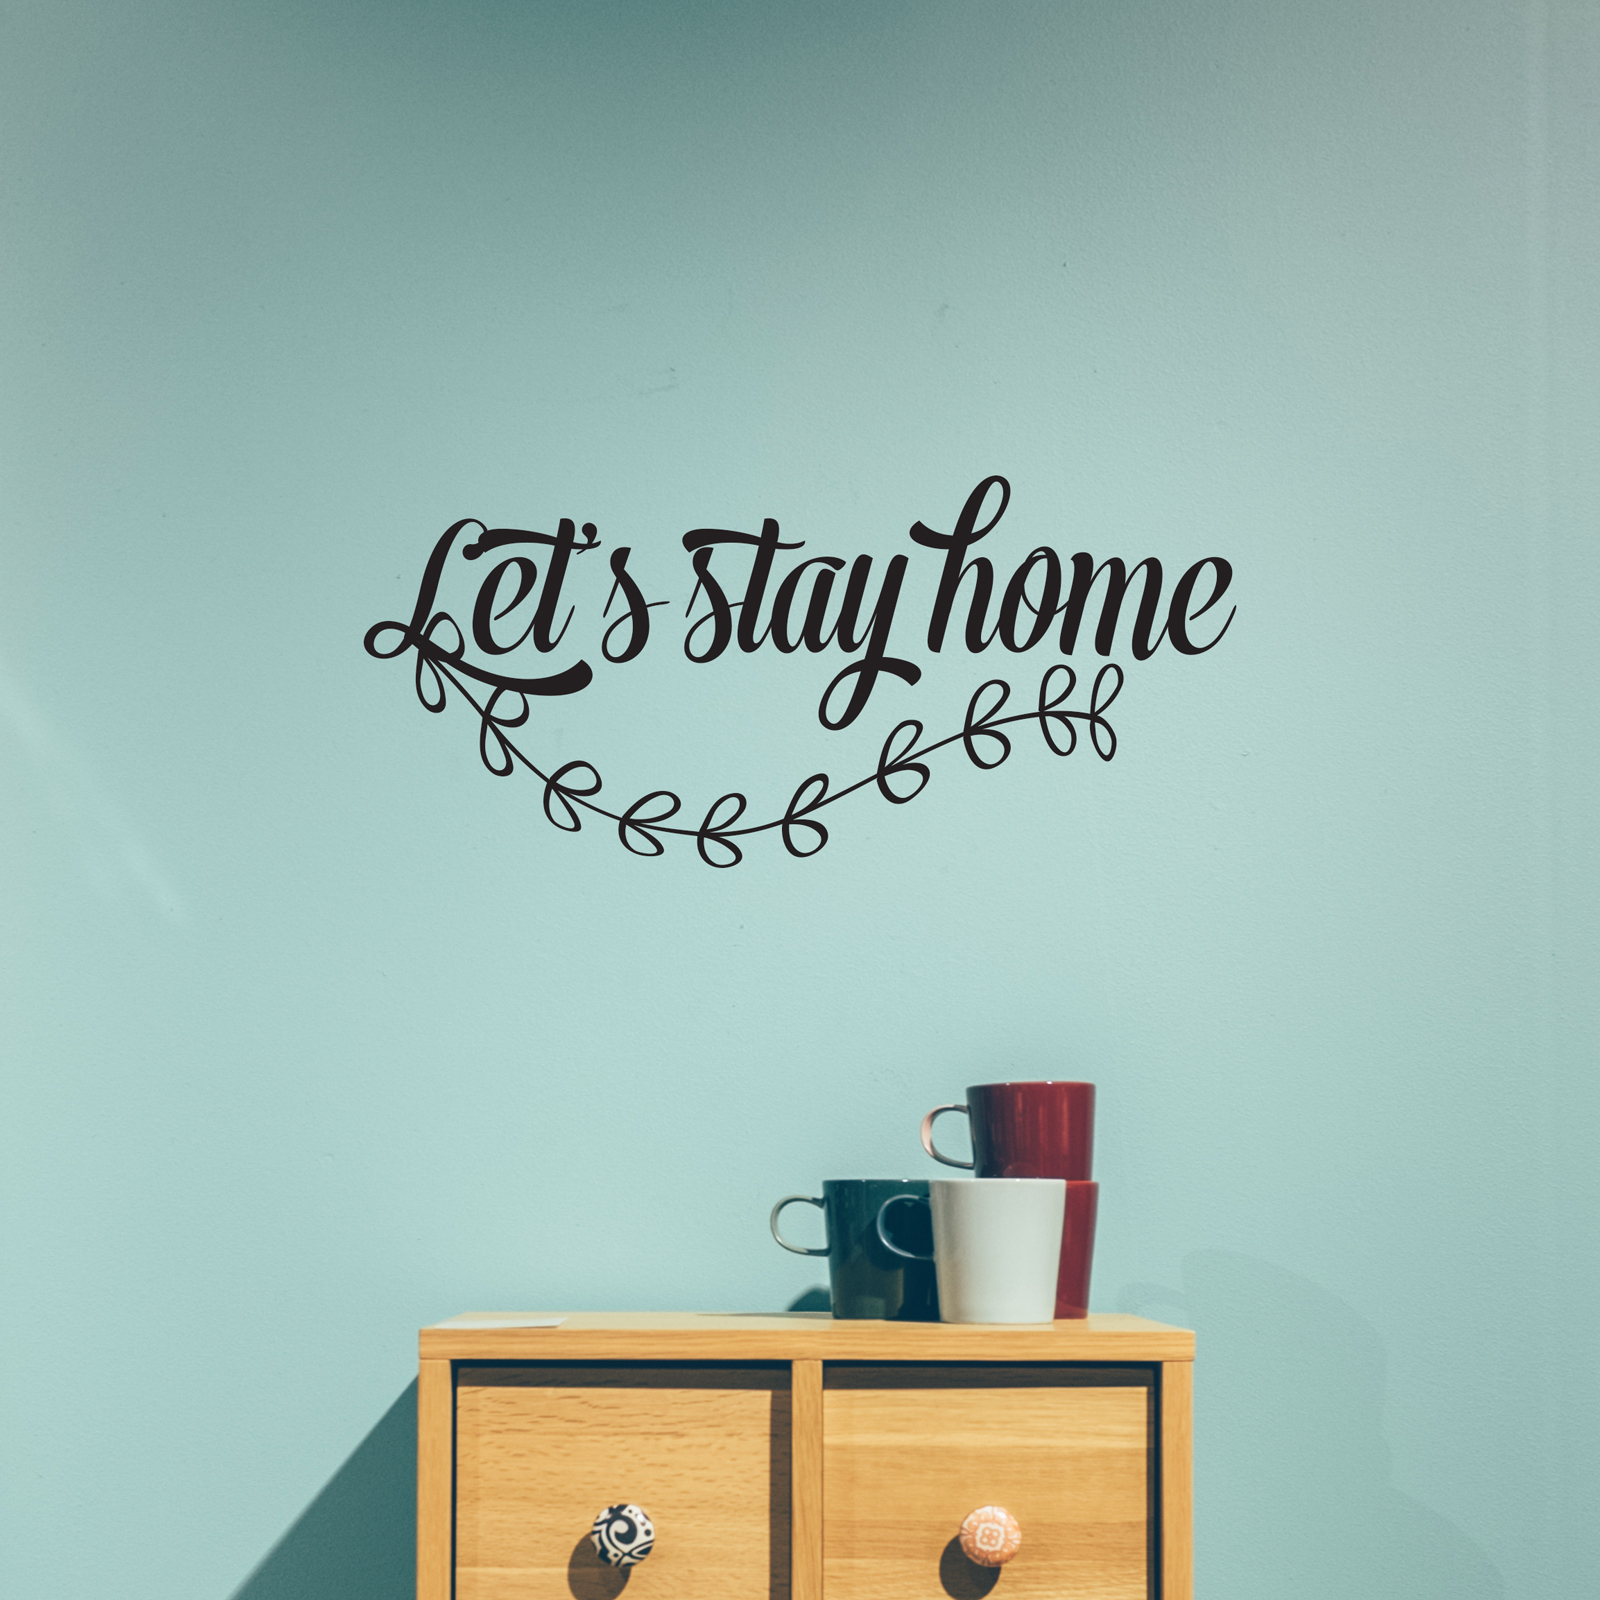 Wallineed wall decals lets stay home wall decal amipublicfo Gallery